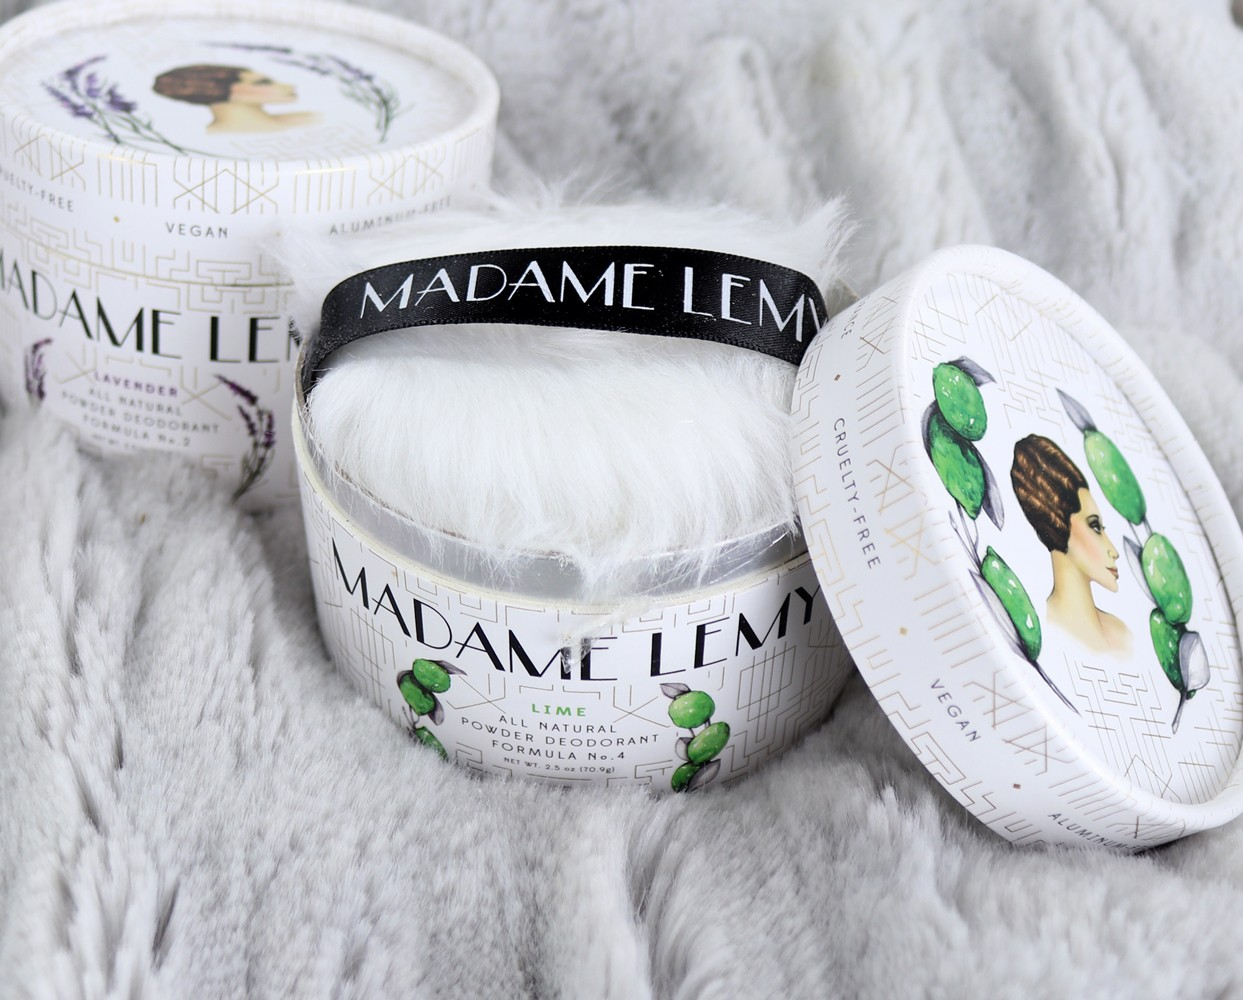 Madame Lemy Natural Deodorant Cruelty Free and Vegan - Cruelty Free Favorites for March by popular Los Angeles cruelty free beauty blogger My Beauty Bunny